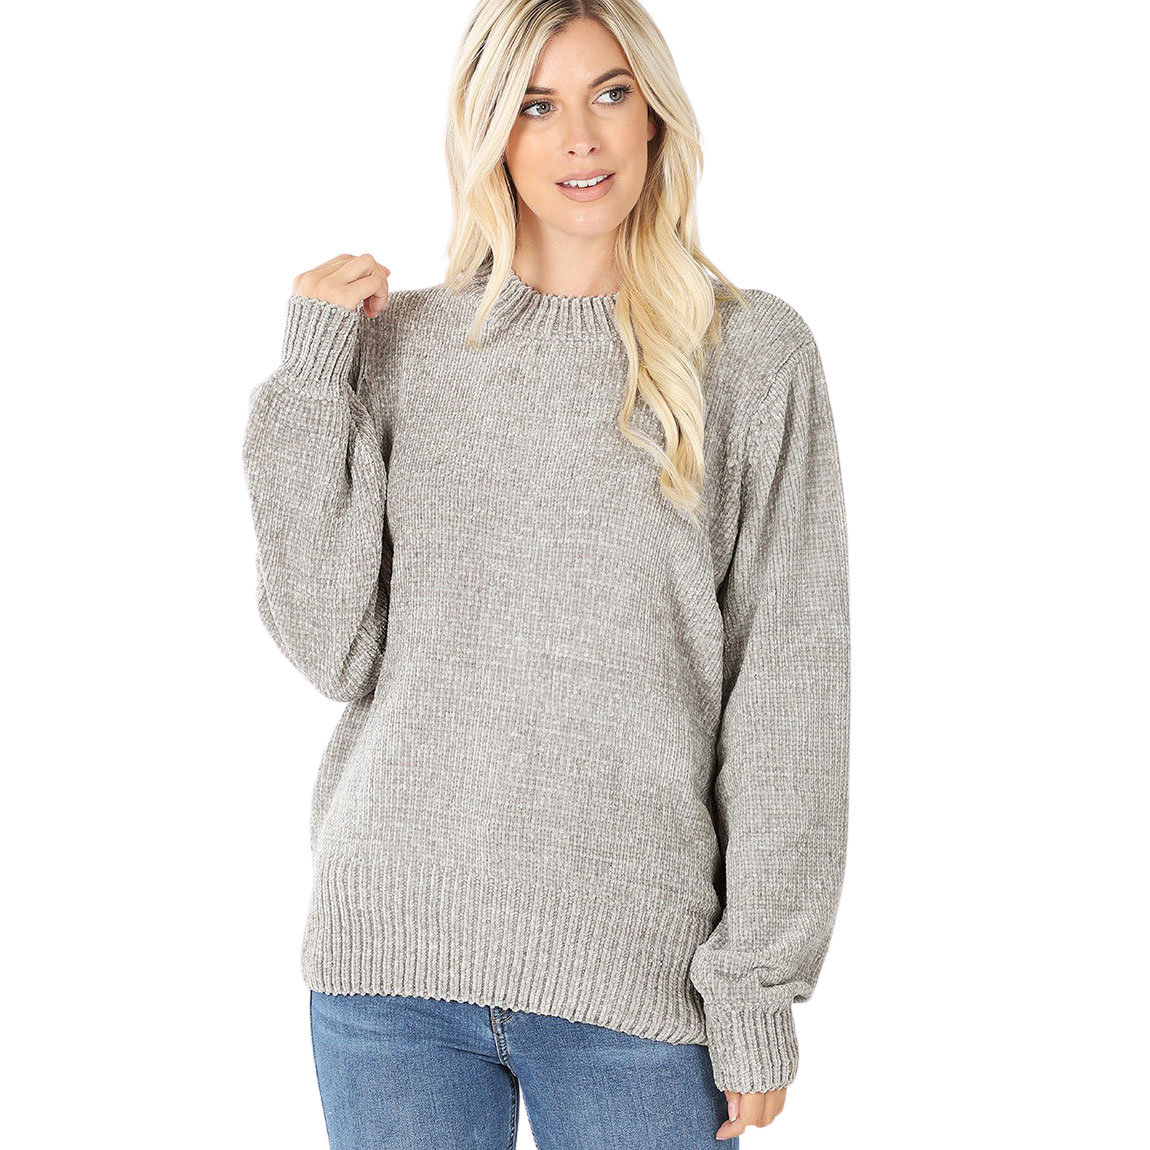 Sweater - Round Neck Balloon Sleeve Chenille 3419 - Light Grey Round Neck Balloon Sleeve Chenille Sweater 3419